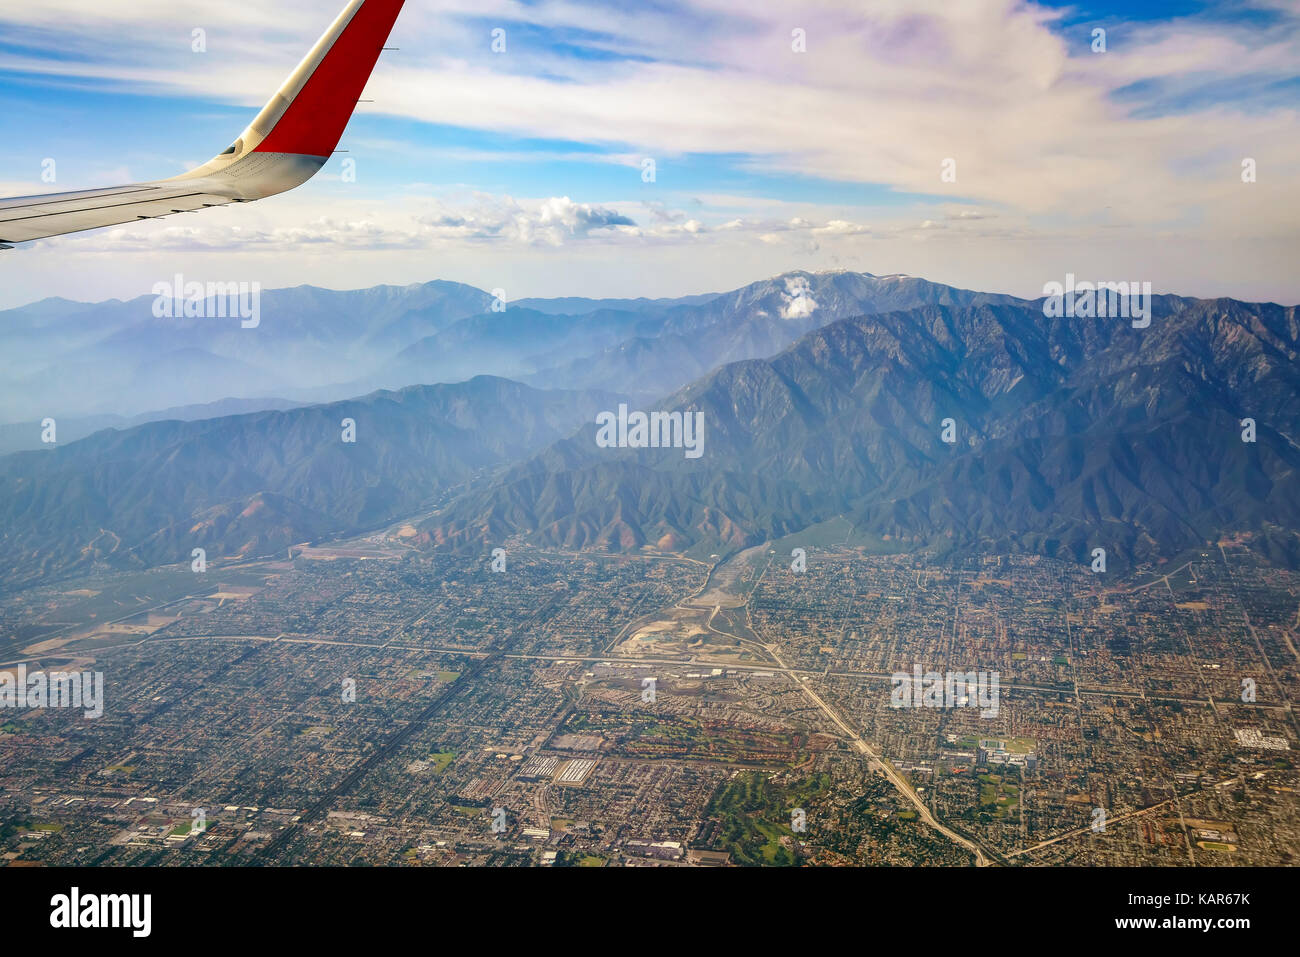 Aerial view of Upland, Rancho Cucamonga, view from window seat in an airplane, California, U.S.A. - Stock Image